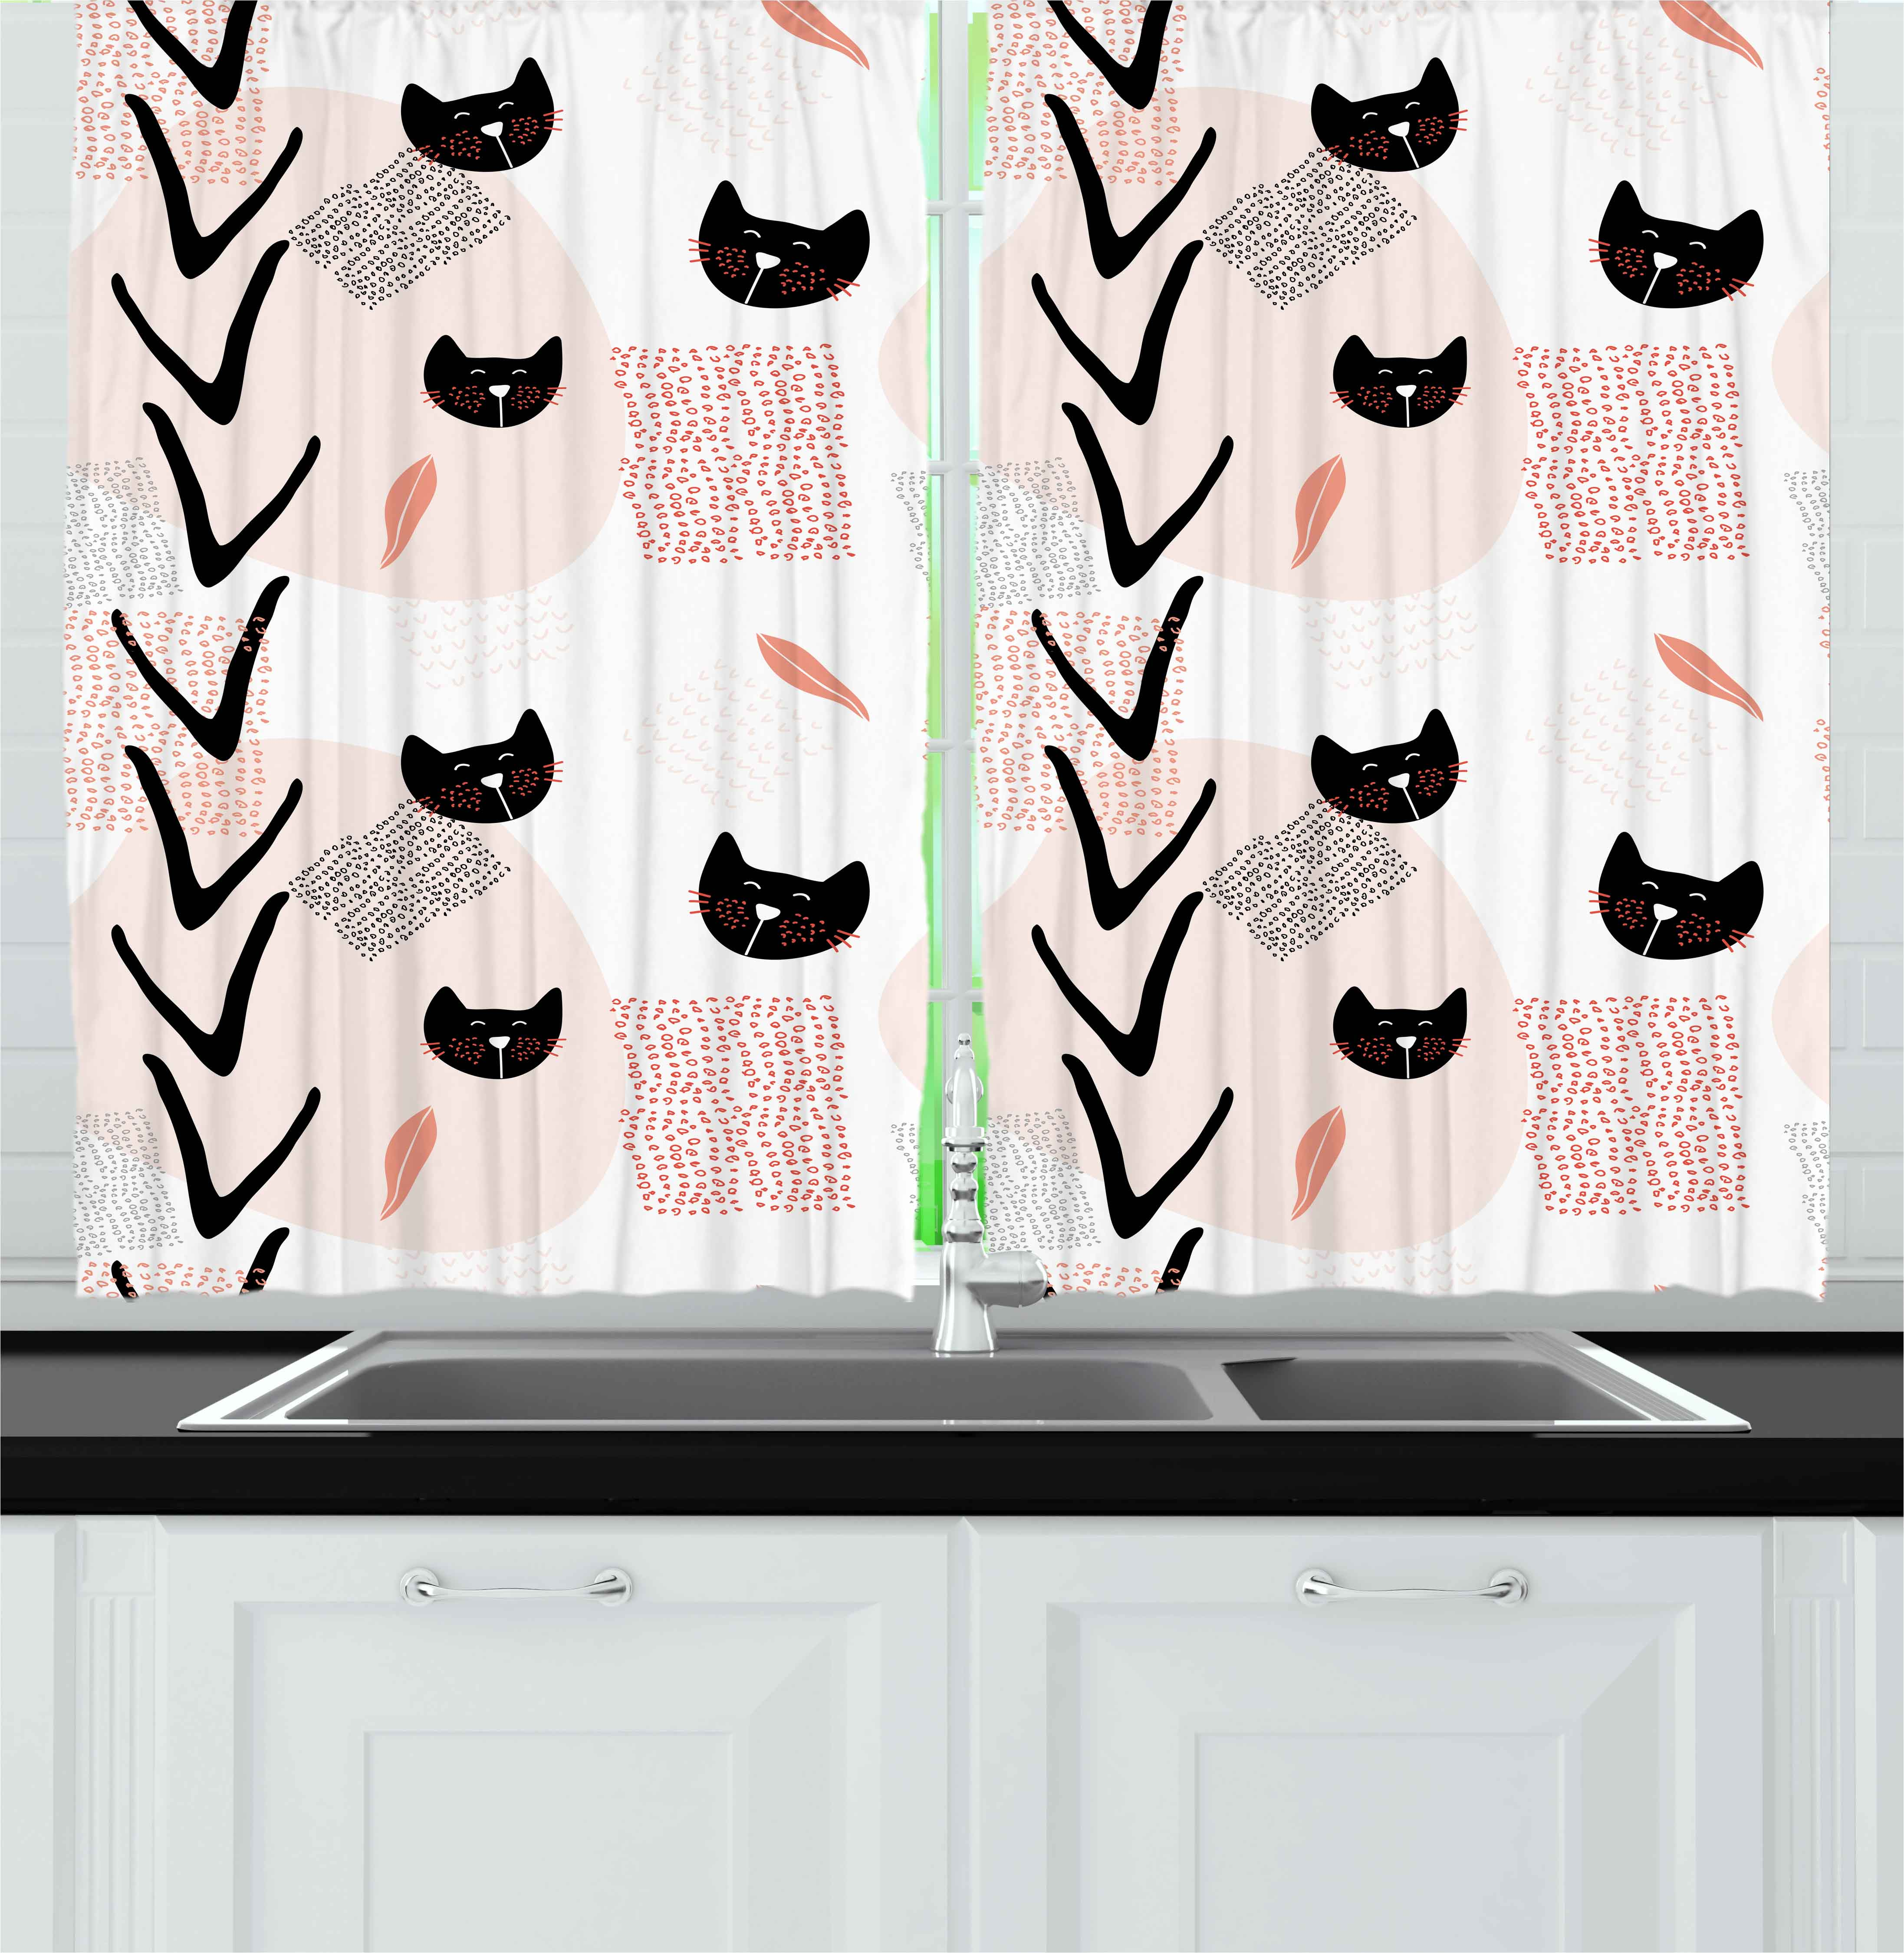 Modern Curtains 2 Panels Set, Cute Cat Faces with Dotted Whiskers Kittens Animals Kids Nursery Theme, Window Drapes for Living Room Bedroom, 55W X 39L Inches, Dark Coral Black Peach, by Ambesonne